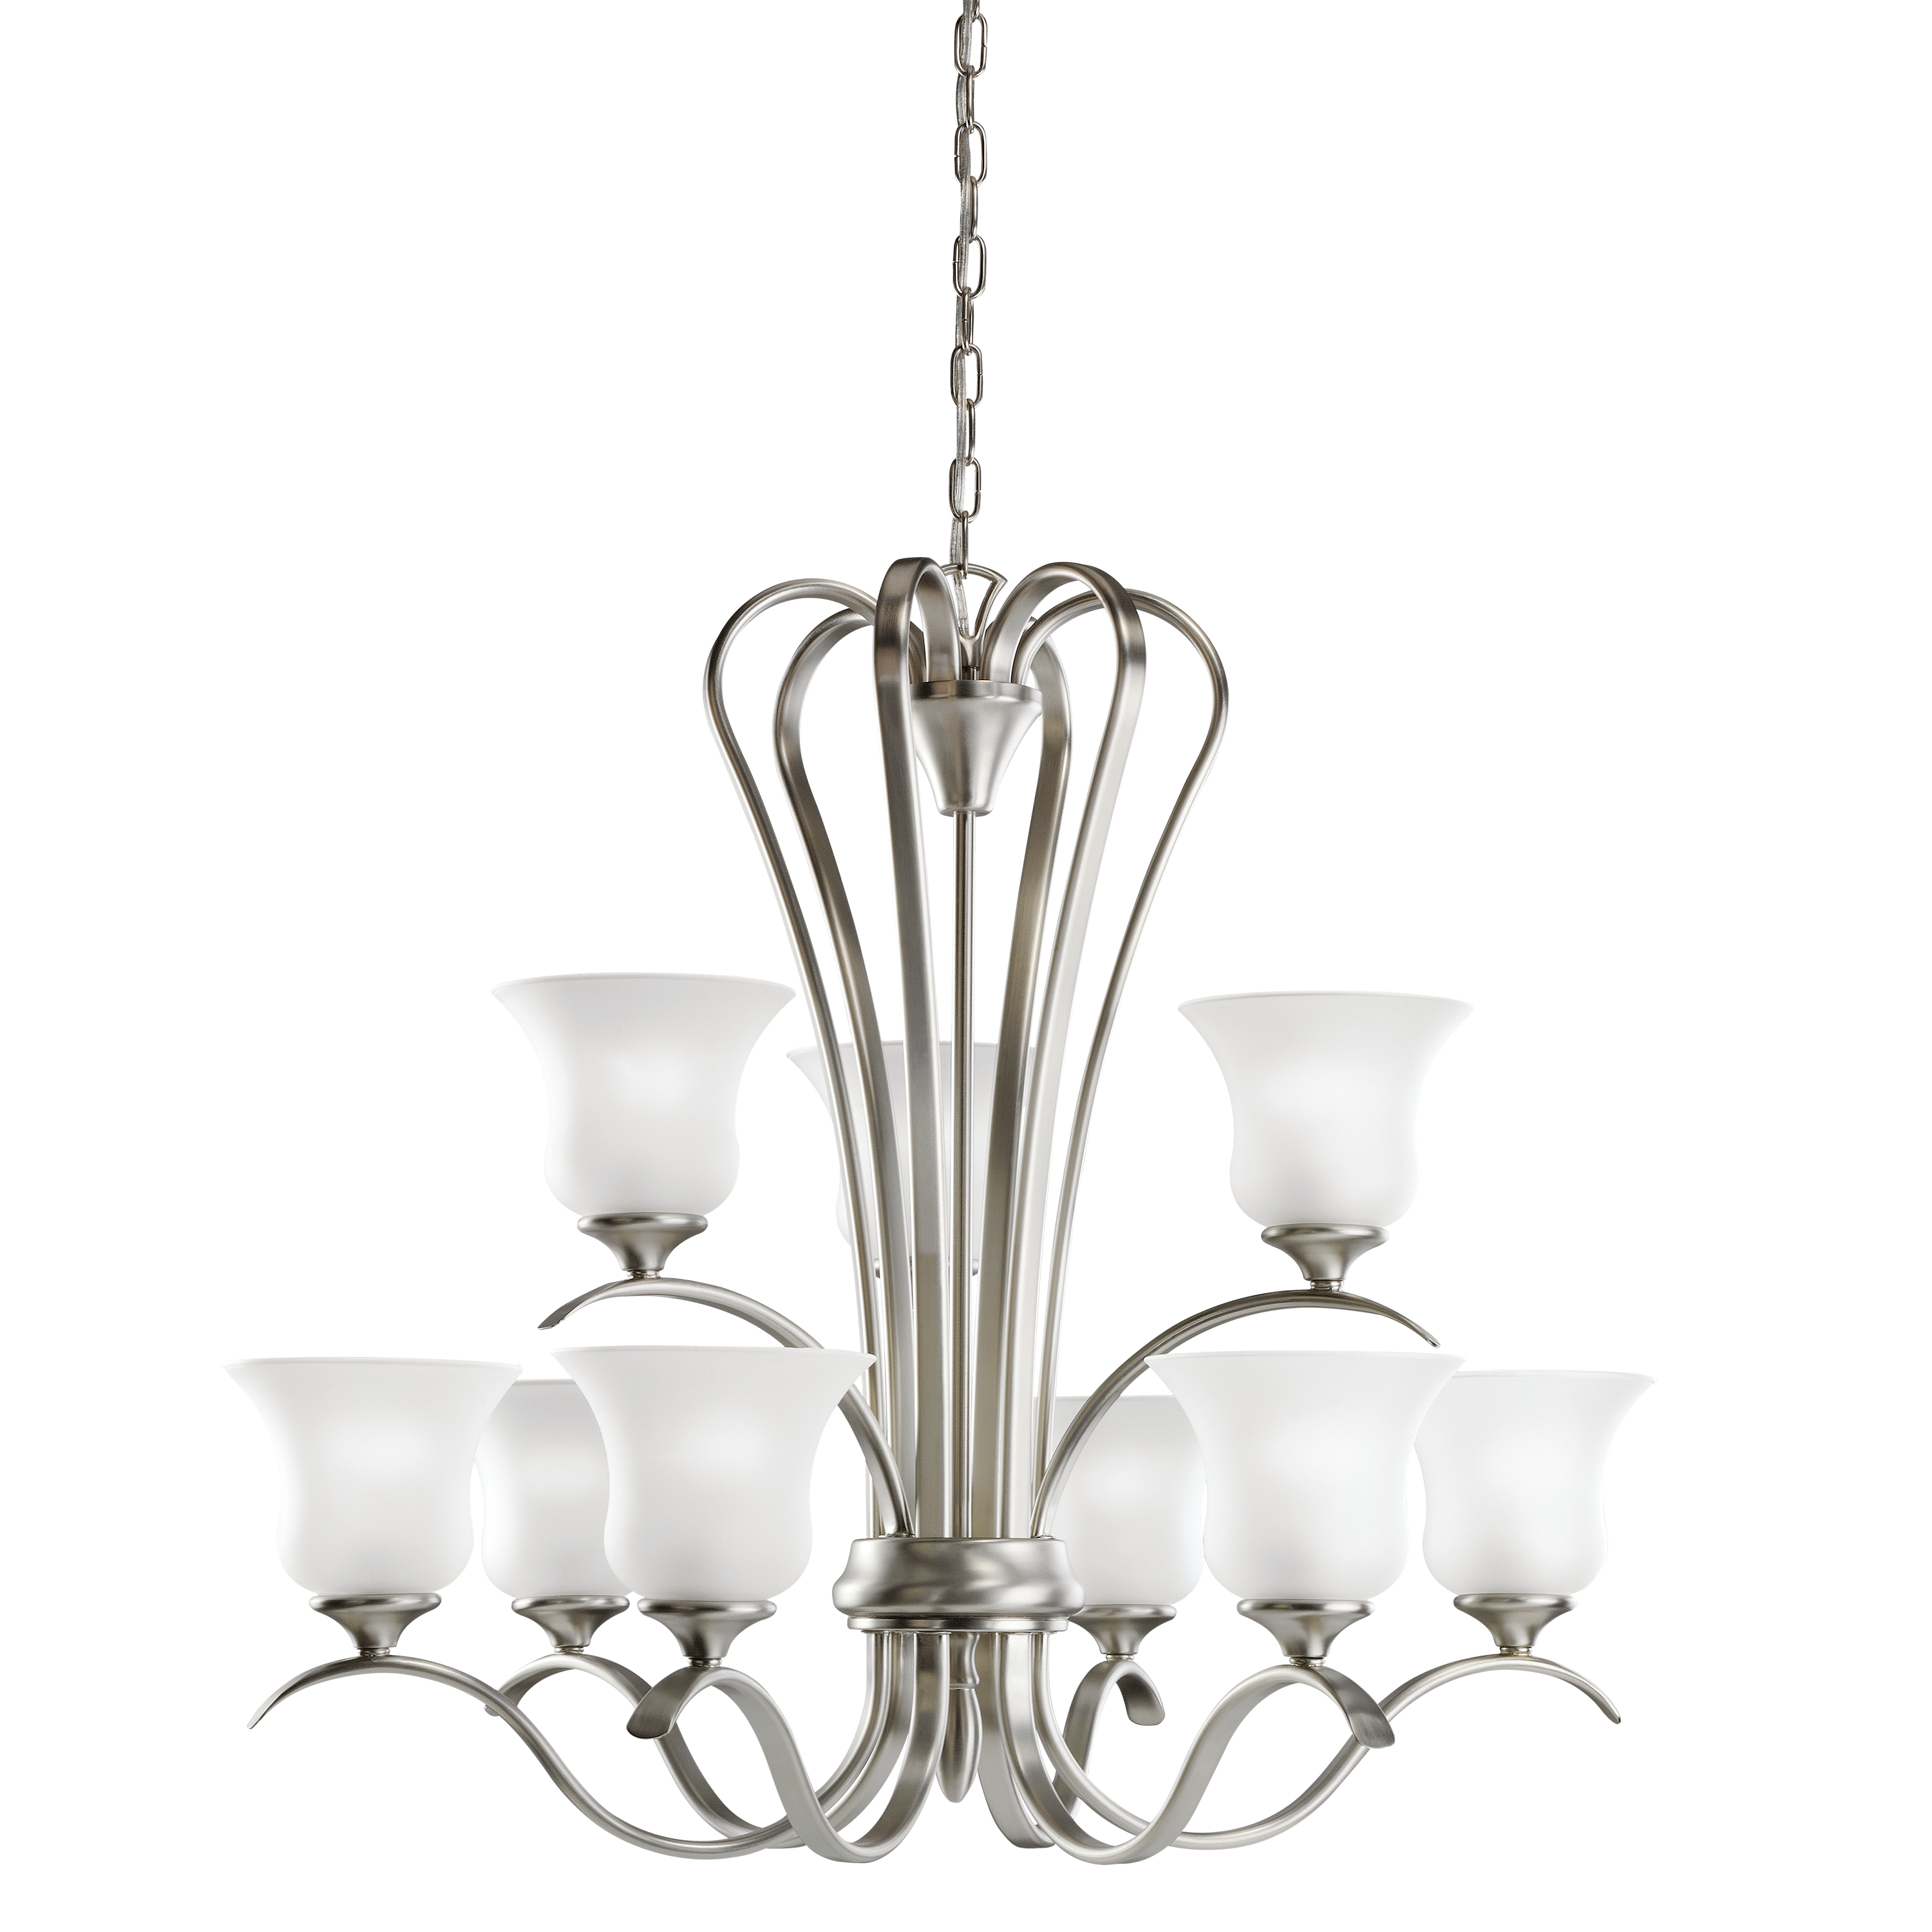 Kichler Wedgeport LED Chandelier with Satin Etched Shade - Brushed Nickel (2086NIL16)